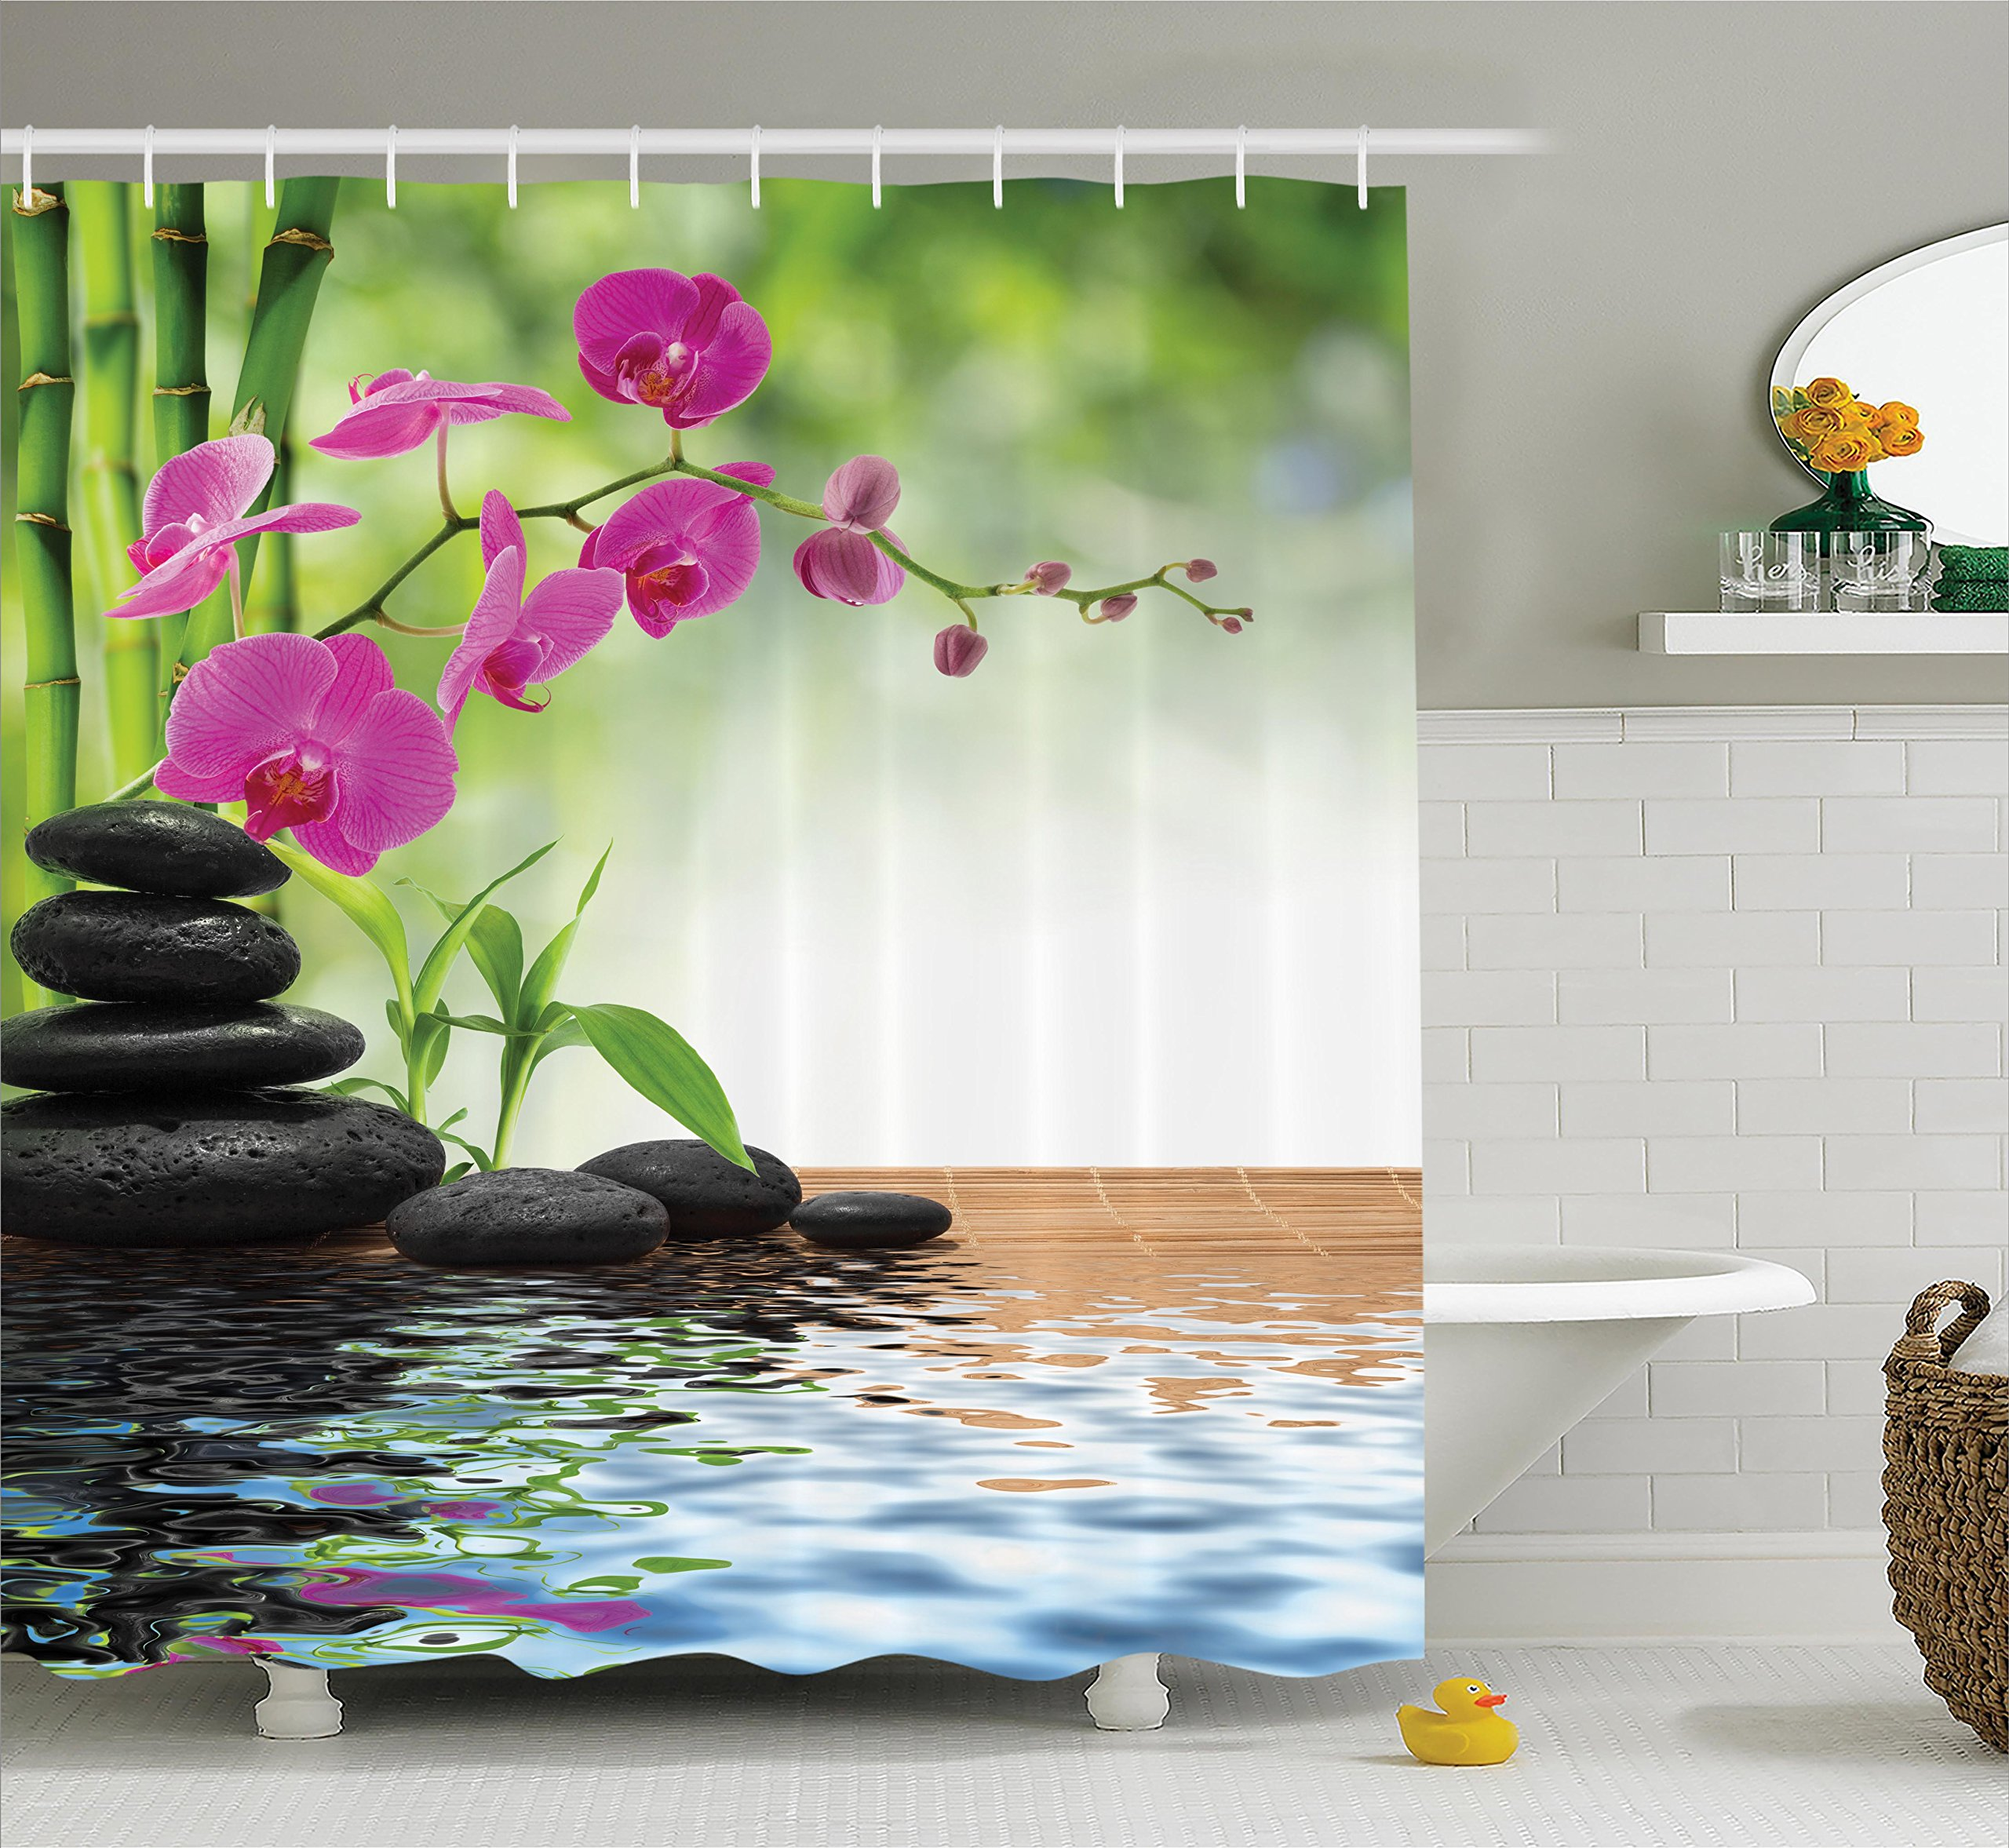 Ambesonne Spa Decor Collection, Composition Bamboo Tree Floor Mat Orchid and Stones Wellbeing Greenery Image Pattern, Polyester Fabric Bathroom Shower Curtain Set, 75 Inches Long, Green Dimgray Peru